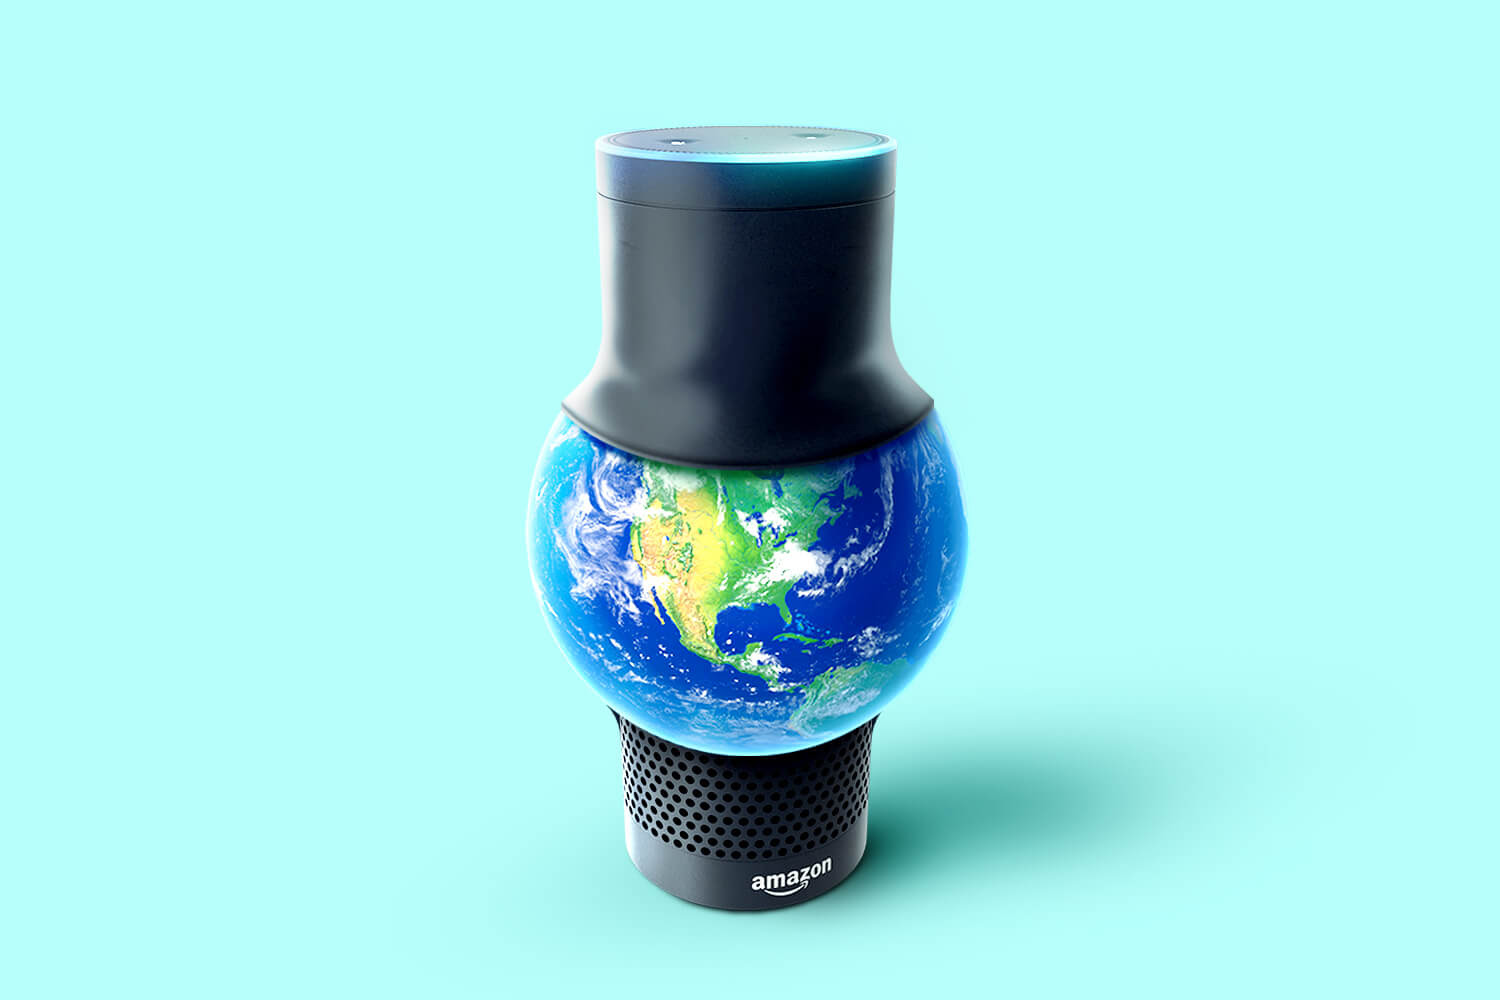 A an Amazon Echo with a globe inside it